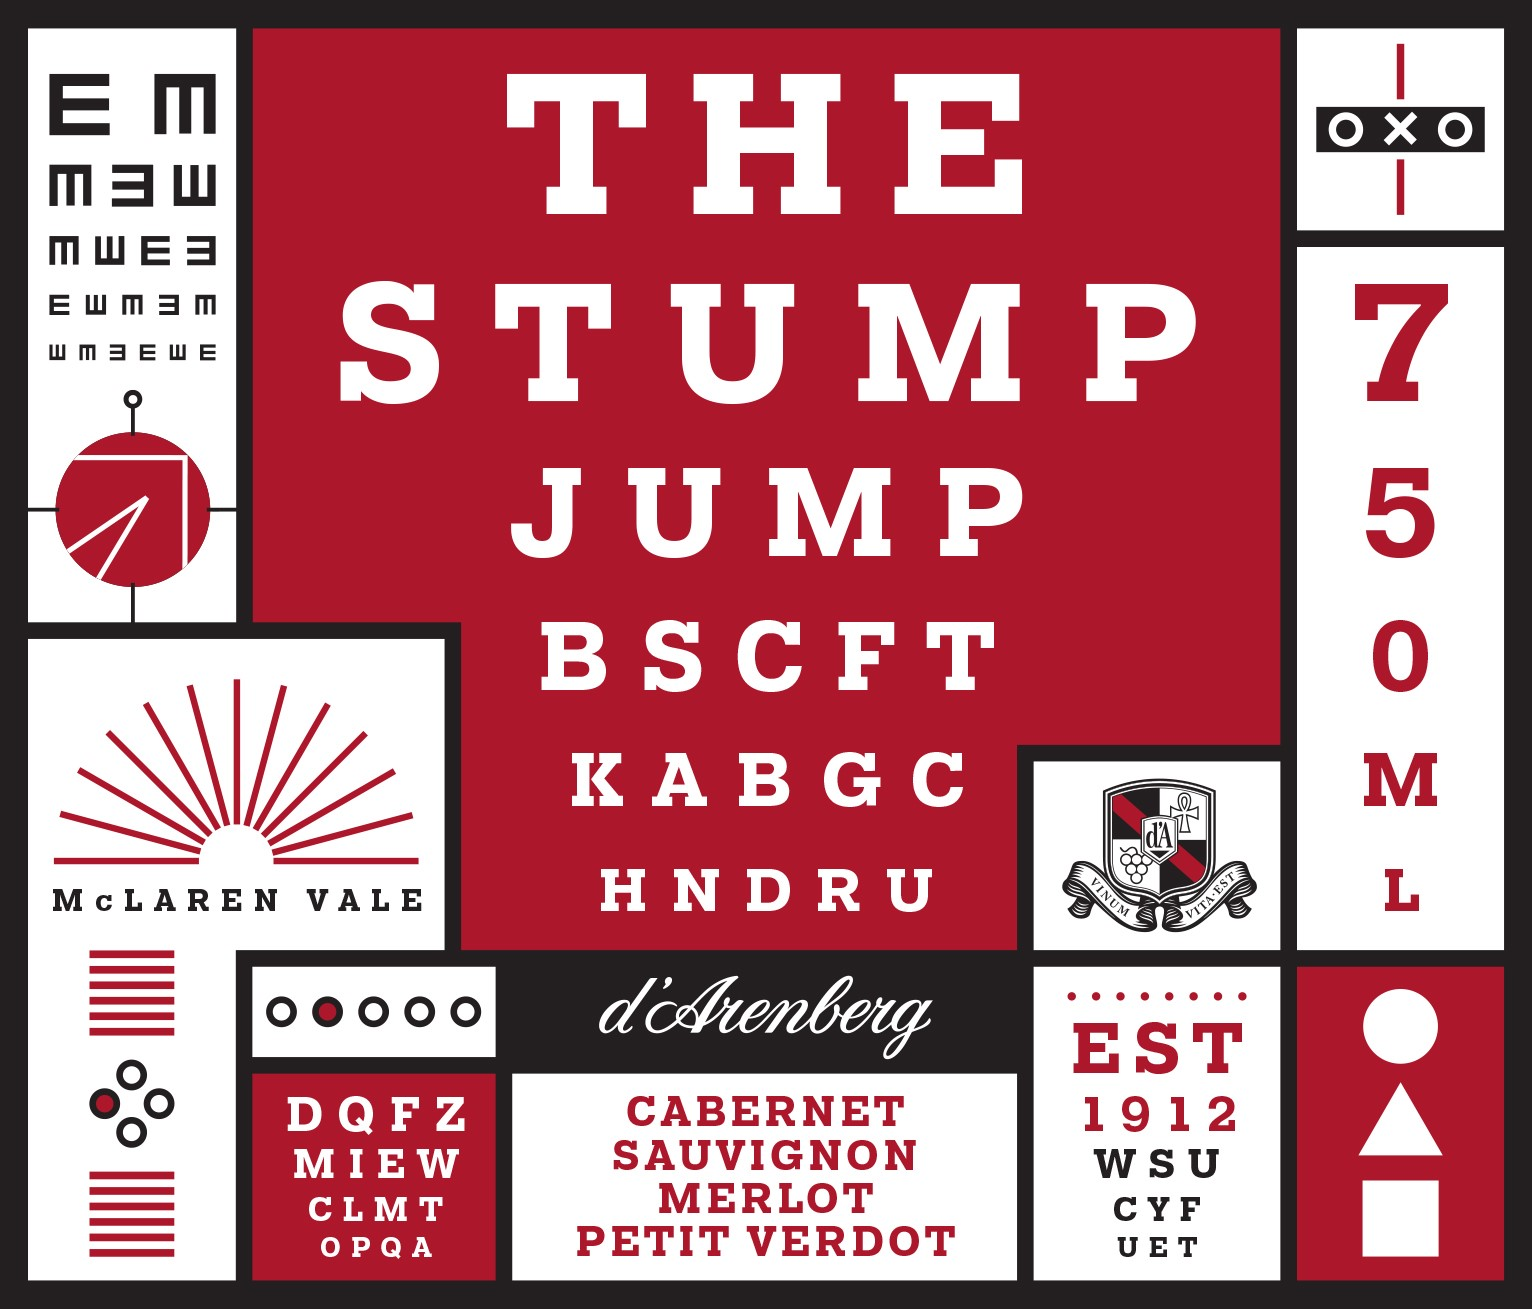 d'Arenberg The Stump Jump Cabernet Merlot 2013 THUMBNAIL